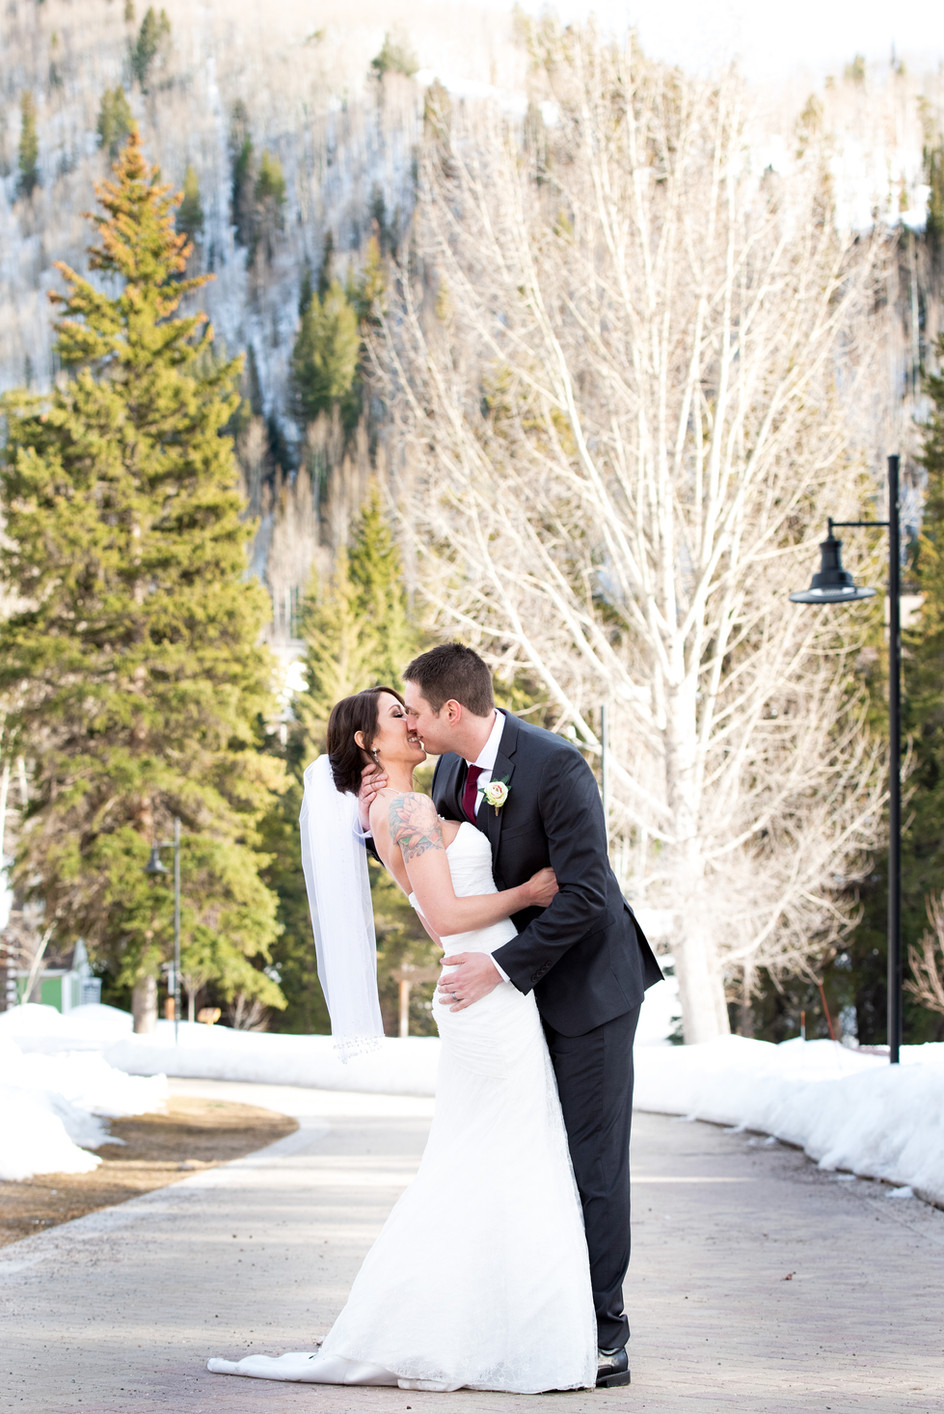 Robert and Jamie's Vail Elopement